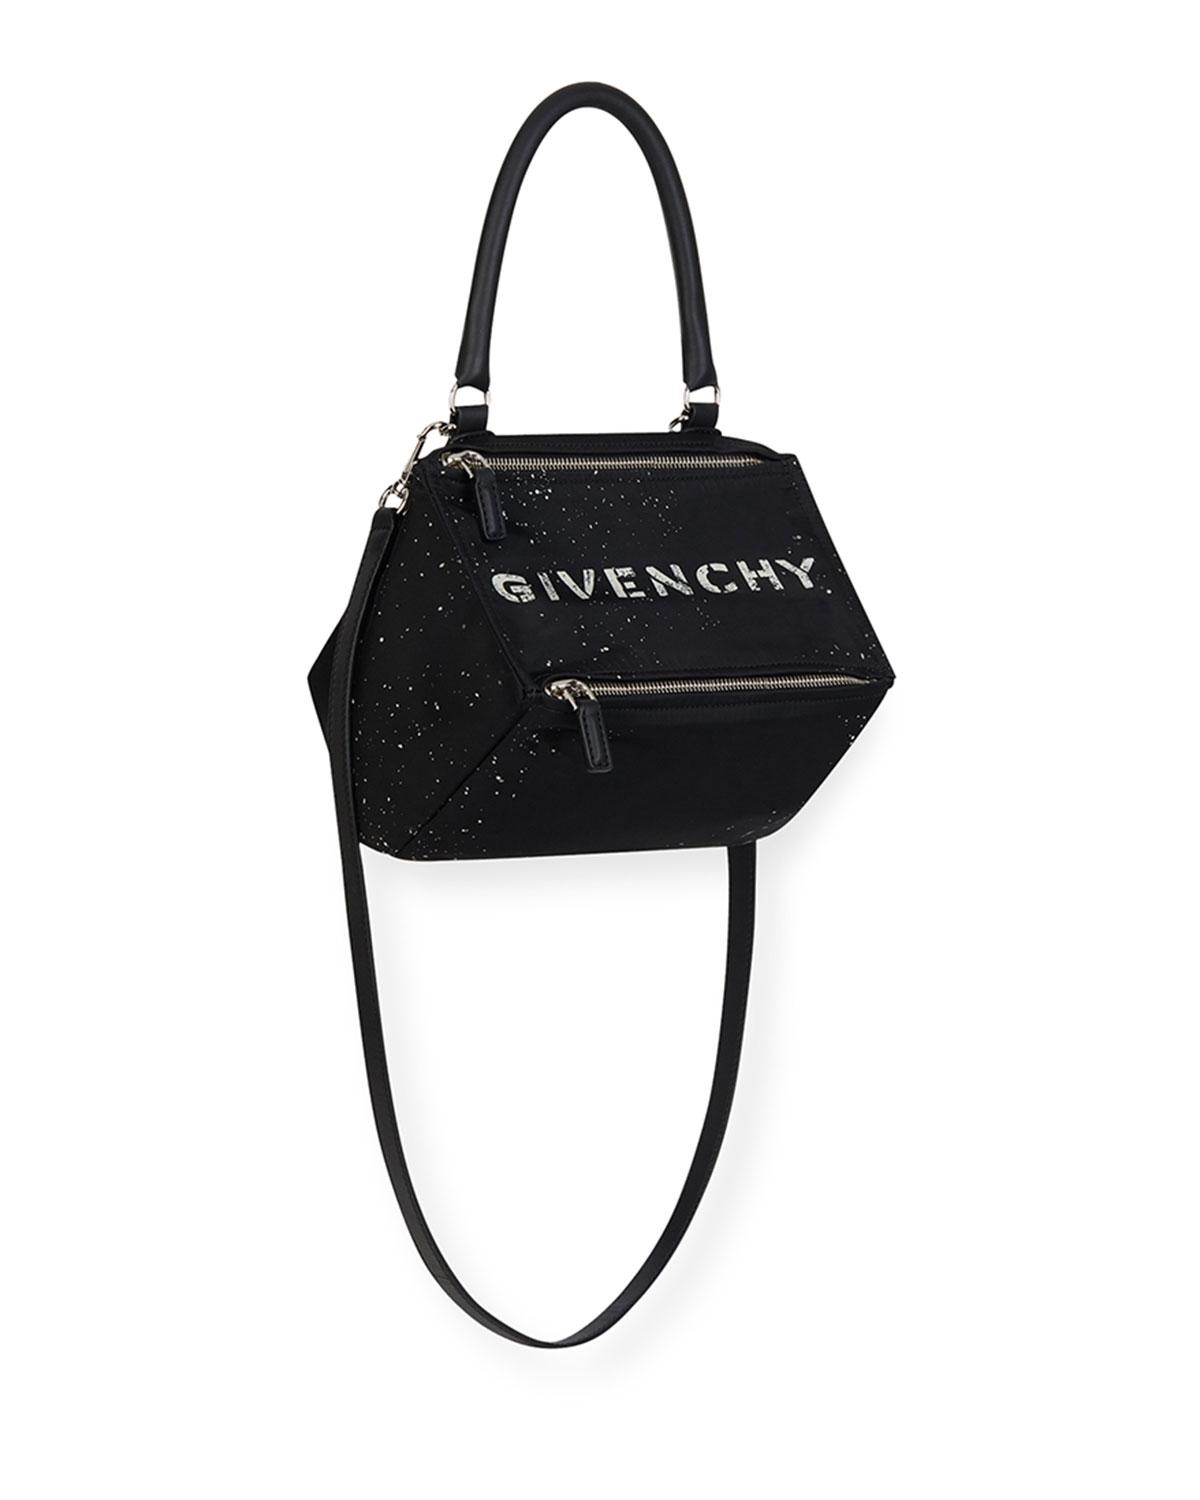 b6fea77387d8 Lyst - Givenchy Small Pandora Bag in Black